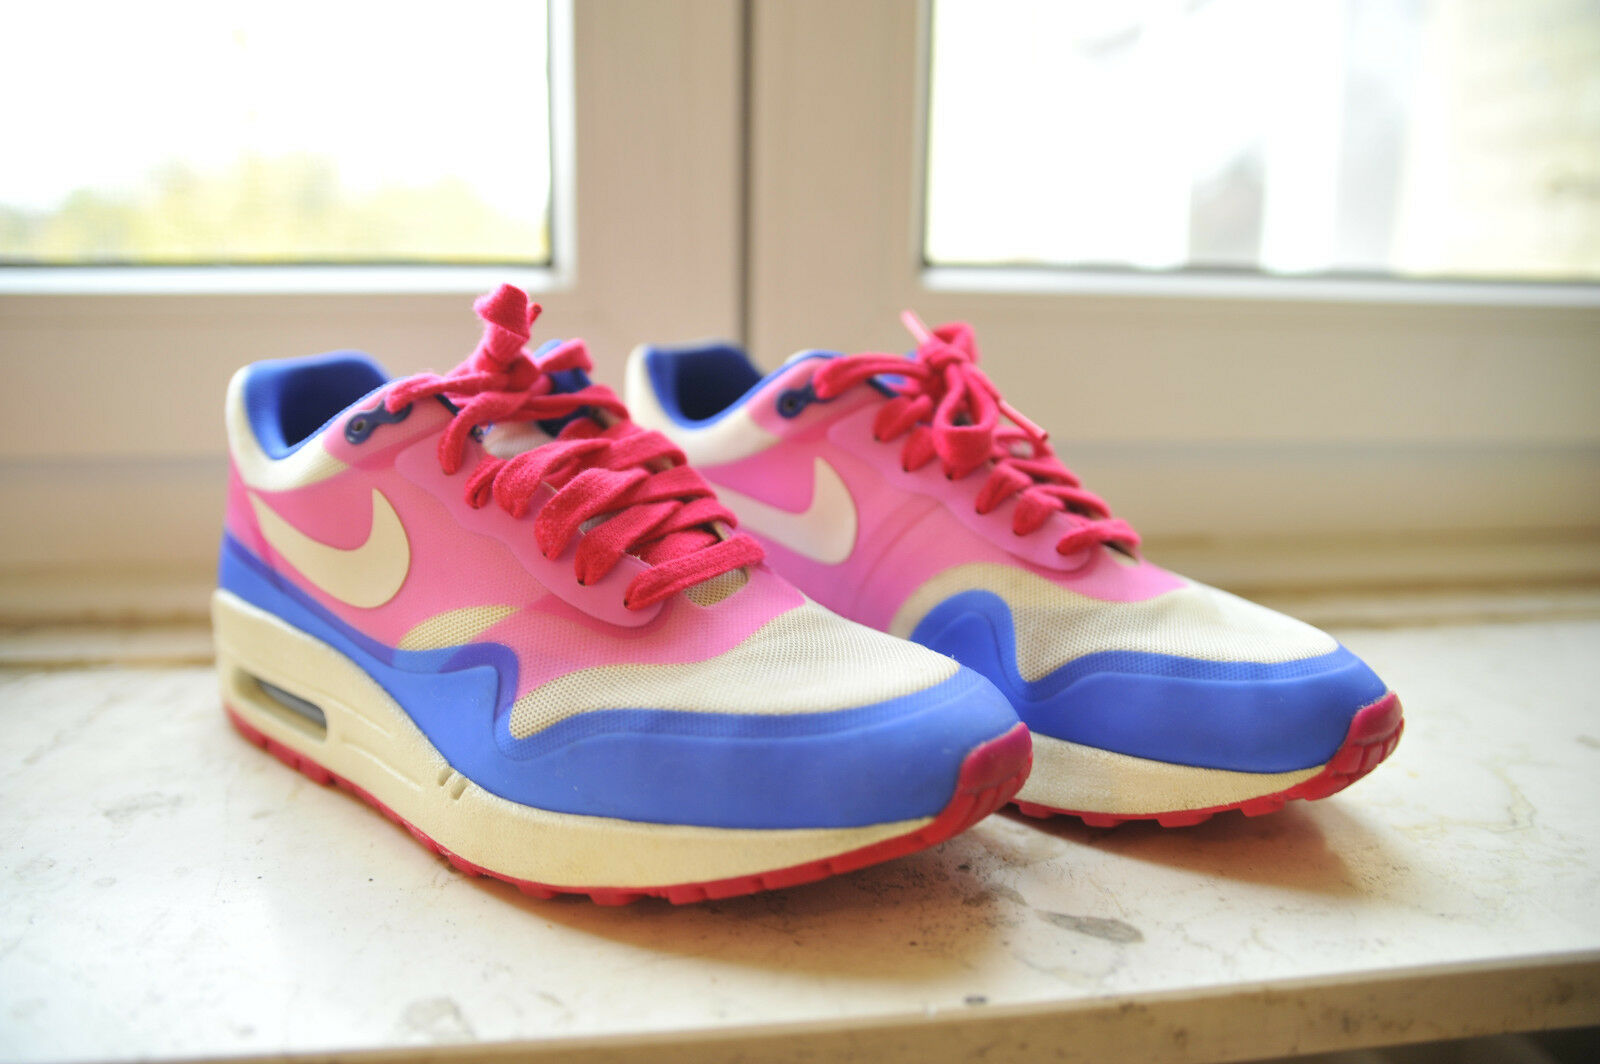 Nike Air Max 1 Hyperfuse Pink/Blau/Weiß US7,5